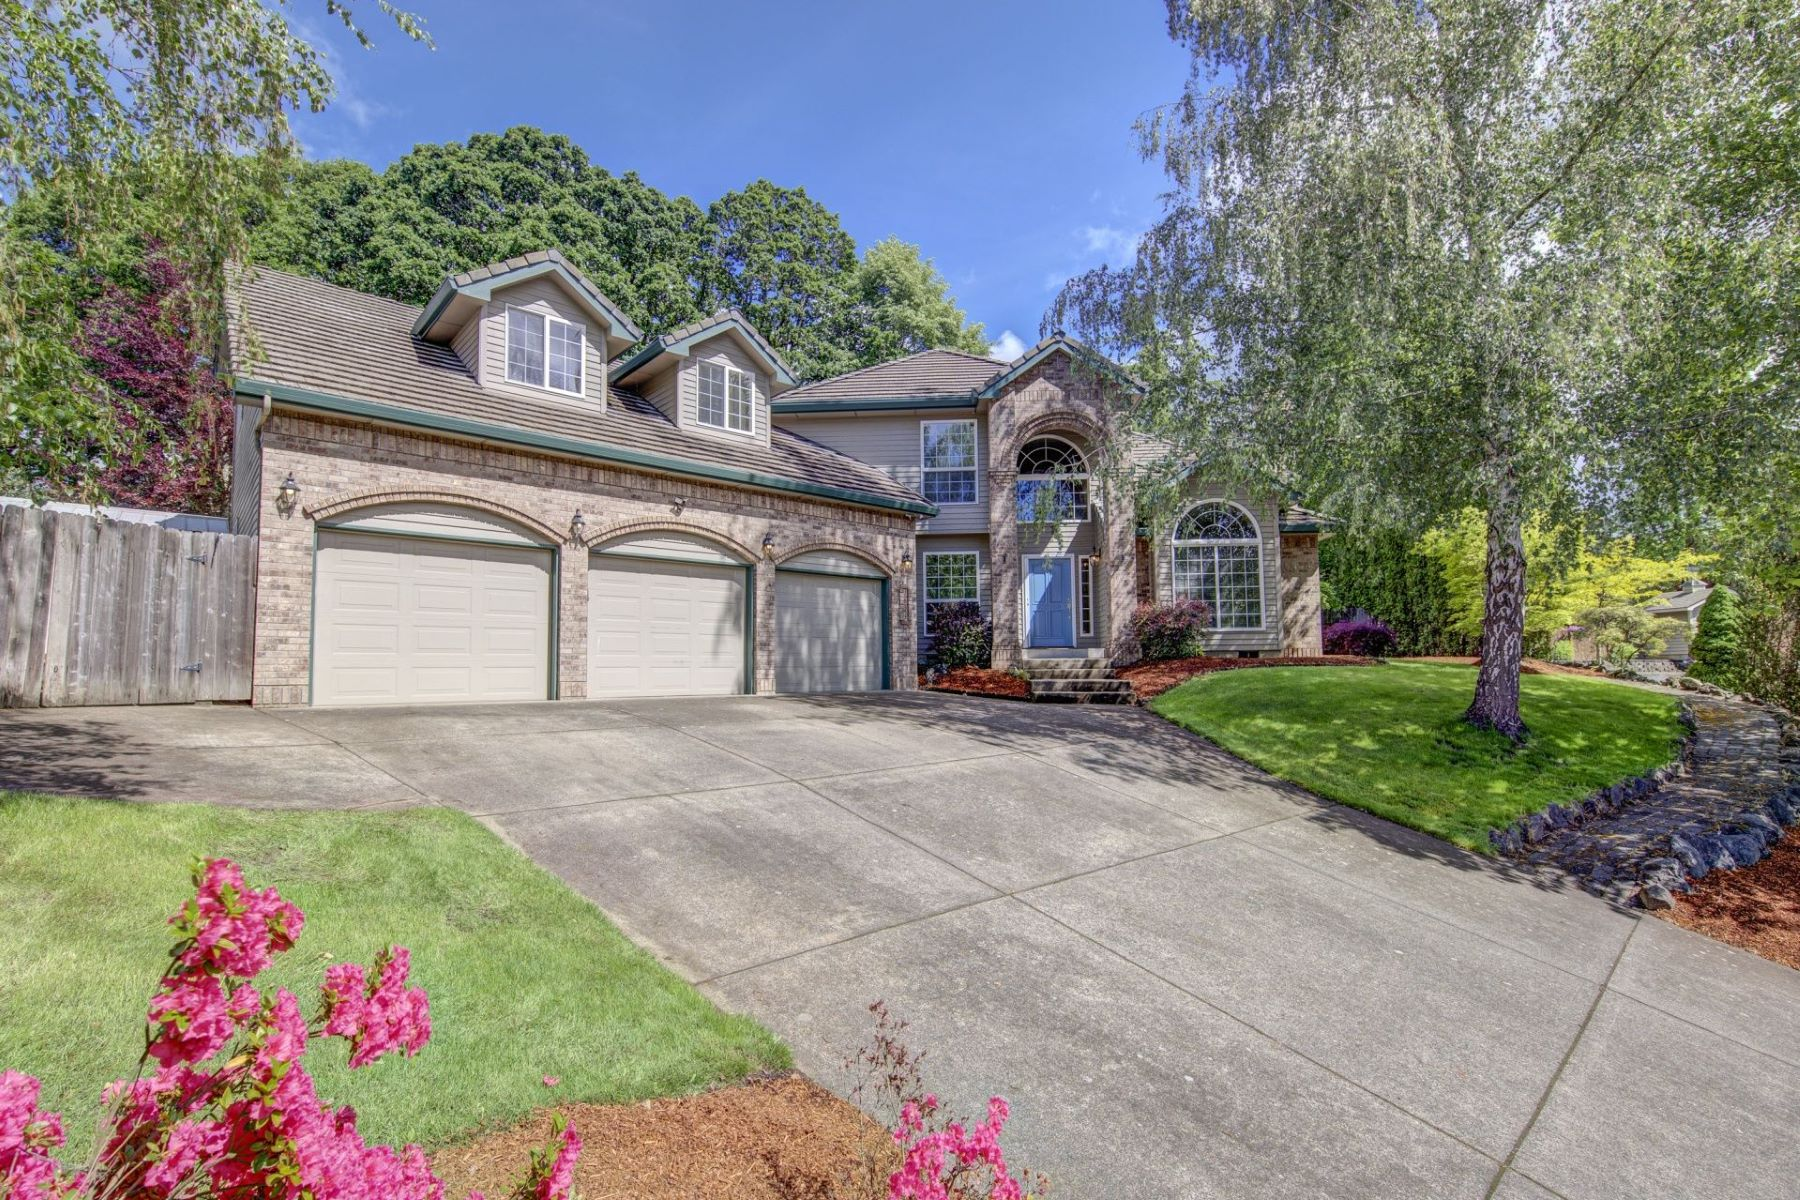 Other Residential Homes for Active at 1623 SW BONNIE JEAN PL McMinnville, OR 97128 1623 SW BONNIE JEAN PL McMinnville, Oregon 97128 United States